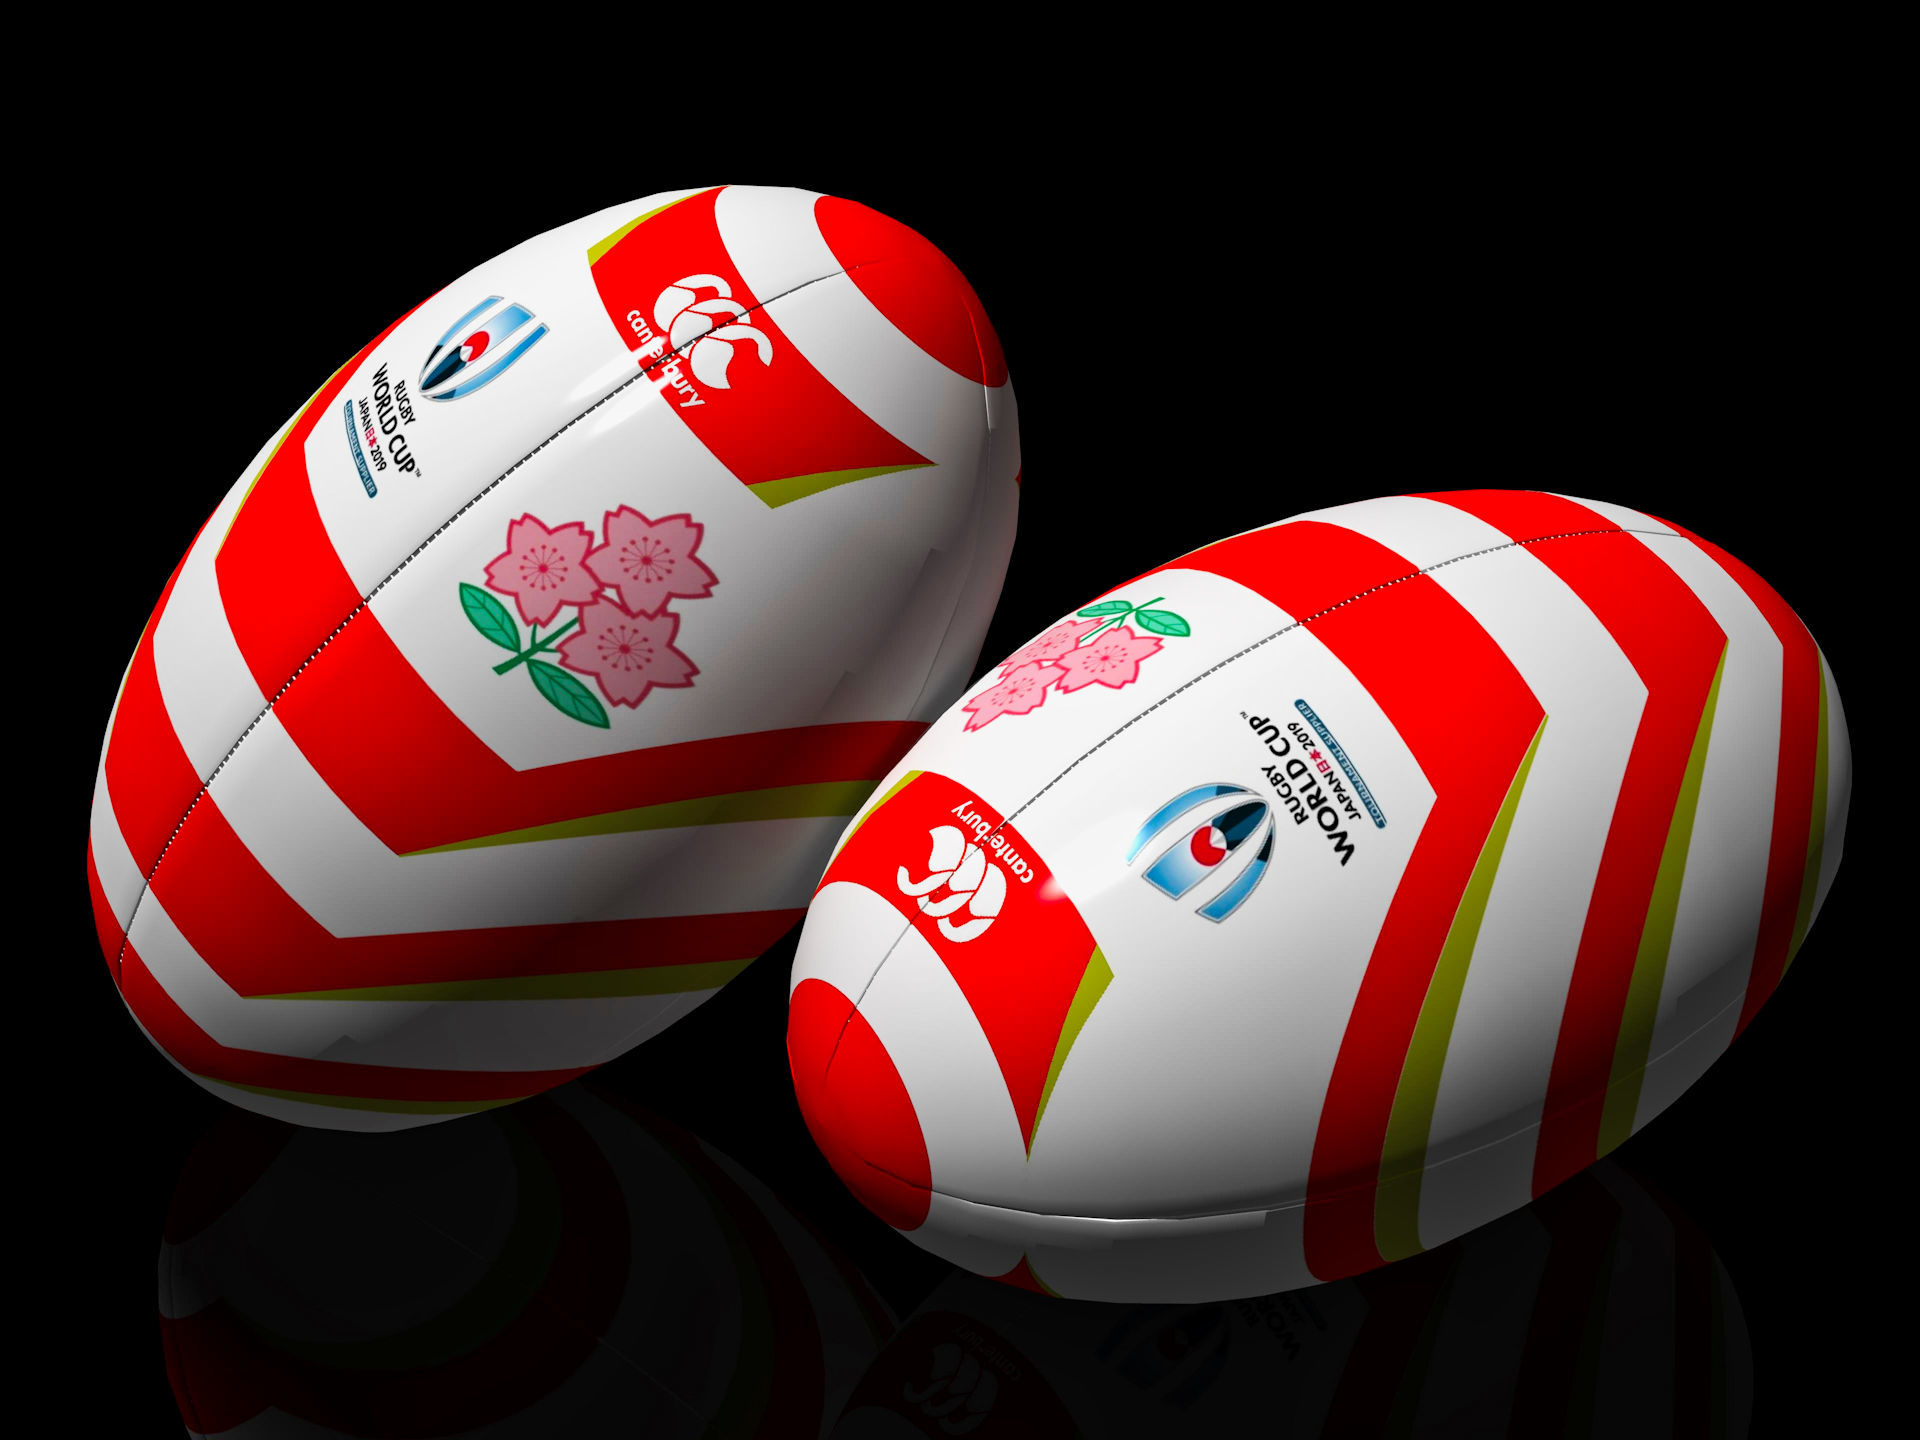 RUGBY WORLD CUP JAPAN 2019 (2)